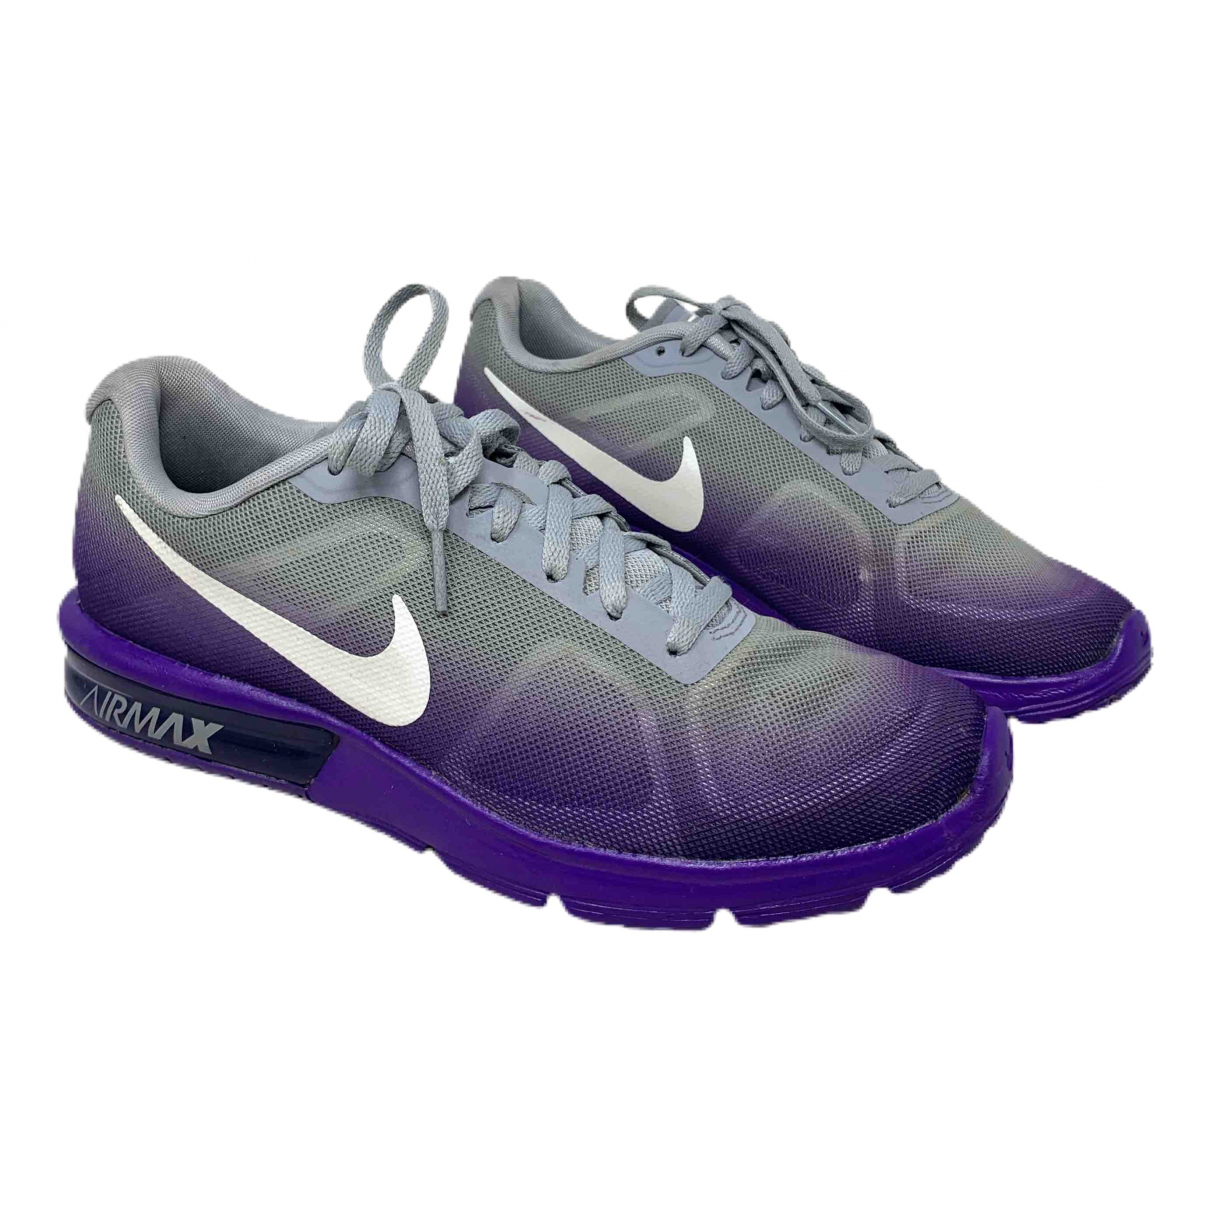 Nike Air Max  Cloth Trainers for Women 39 EU